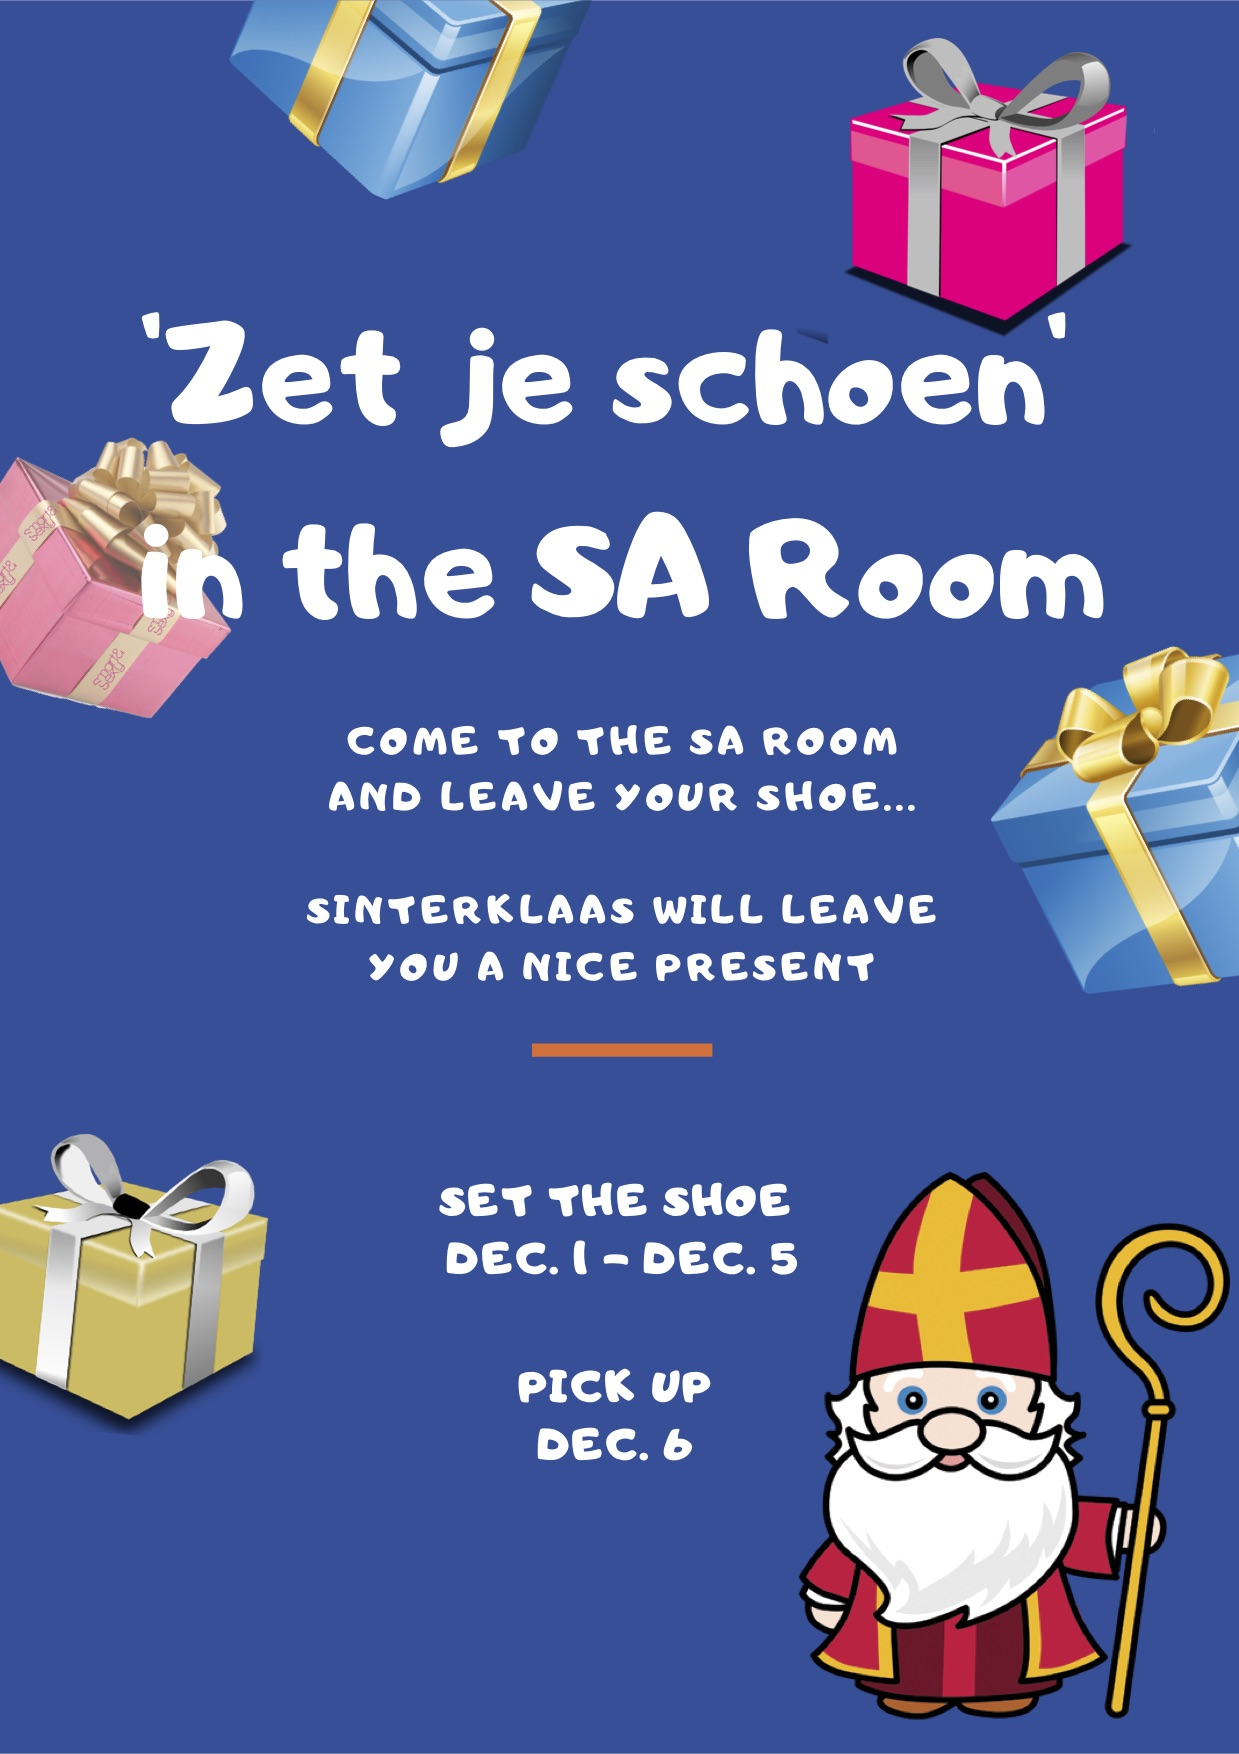 'Zet je Schoen' in the SA room!